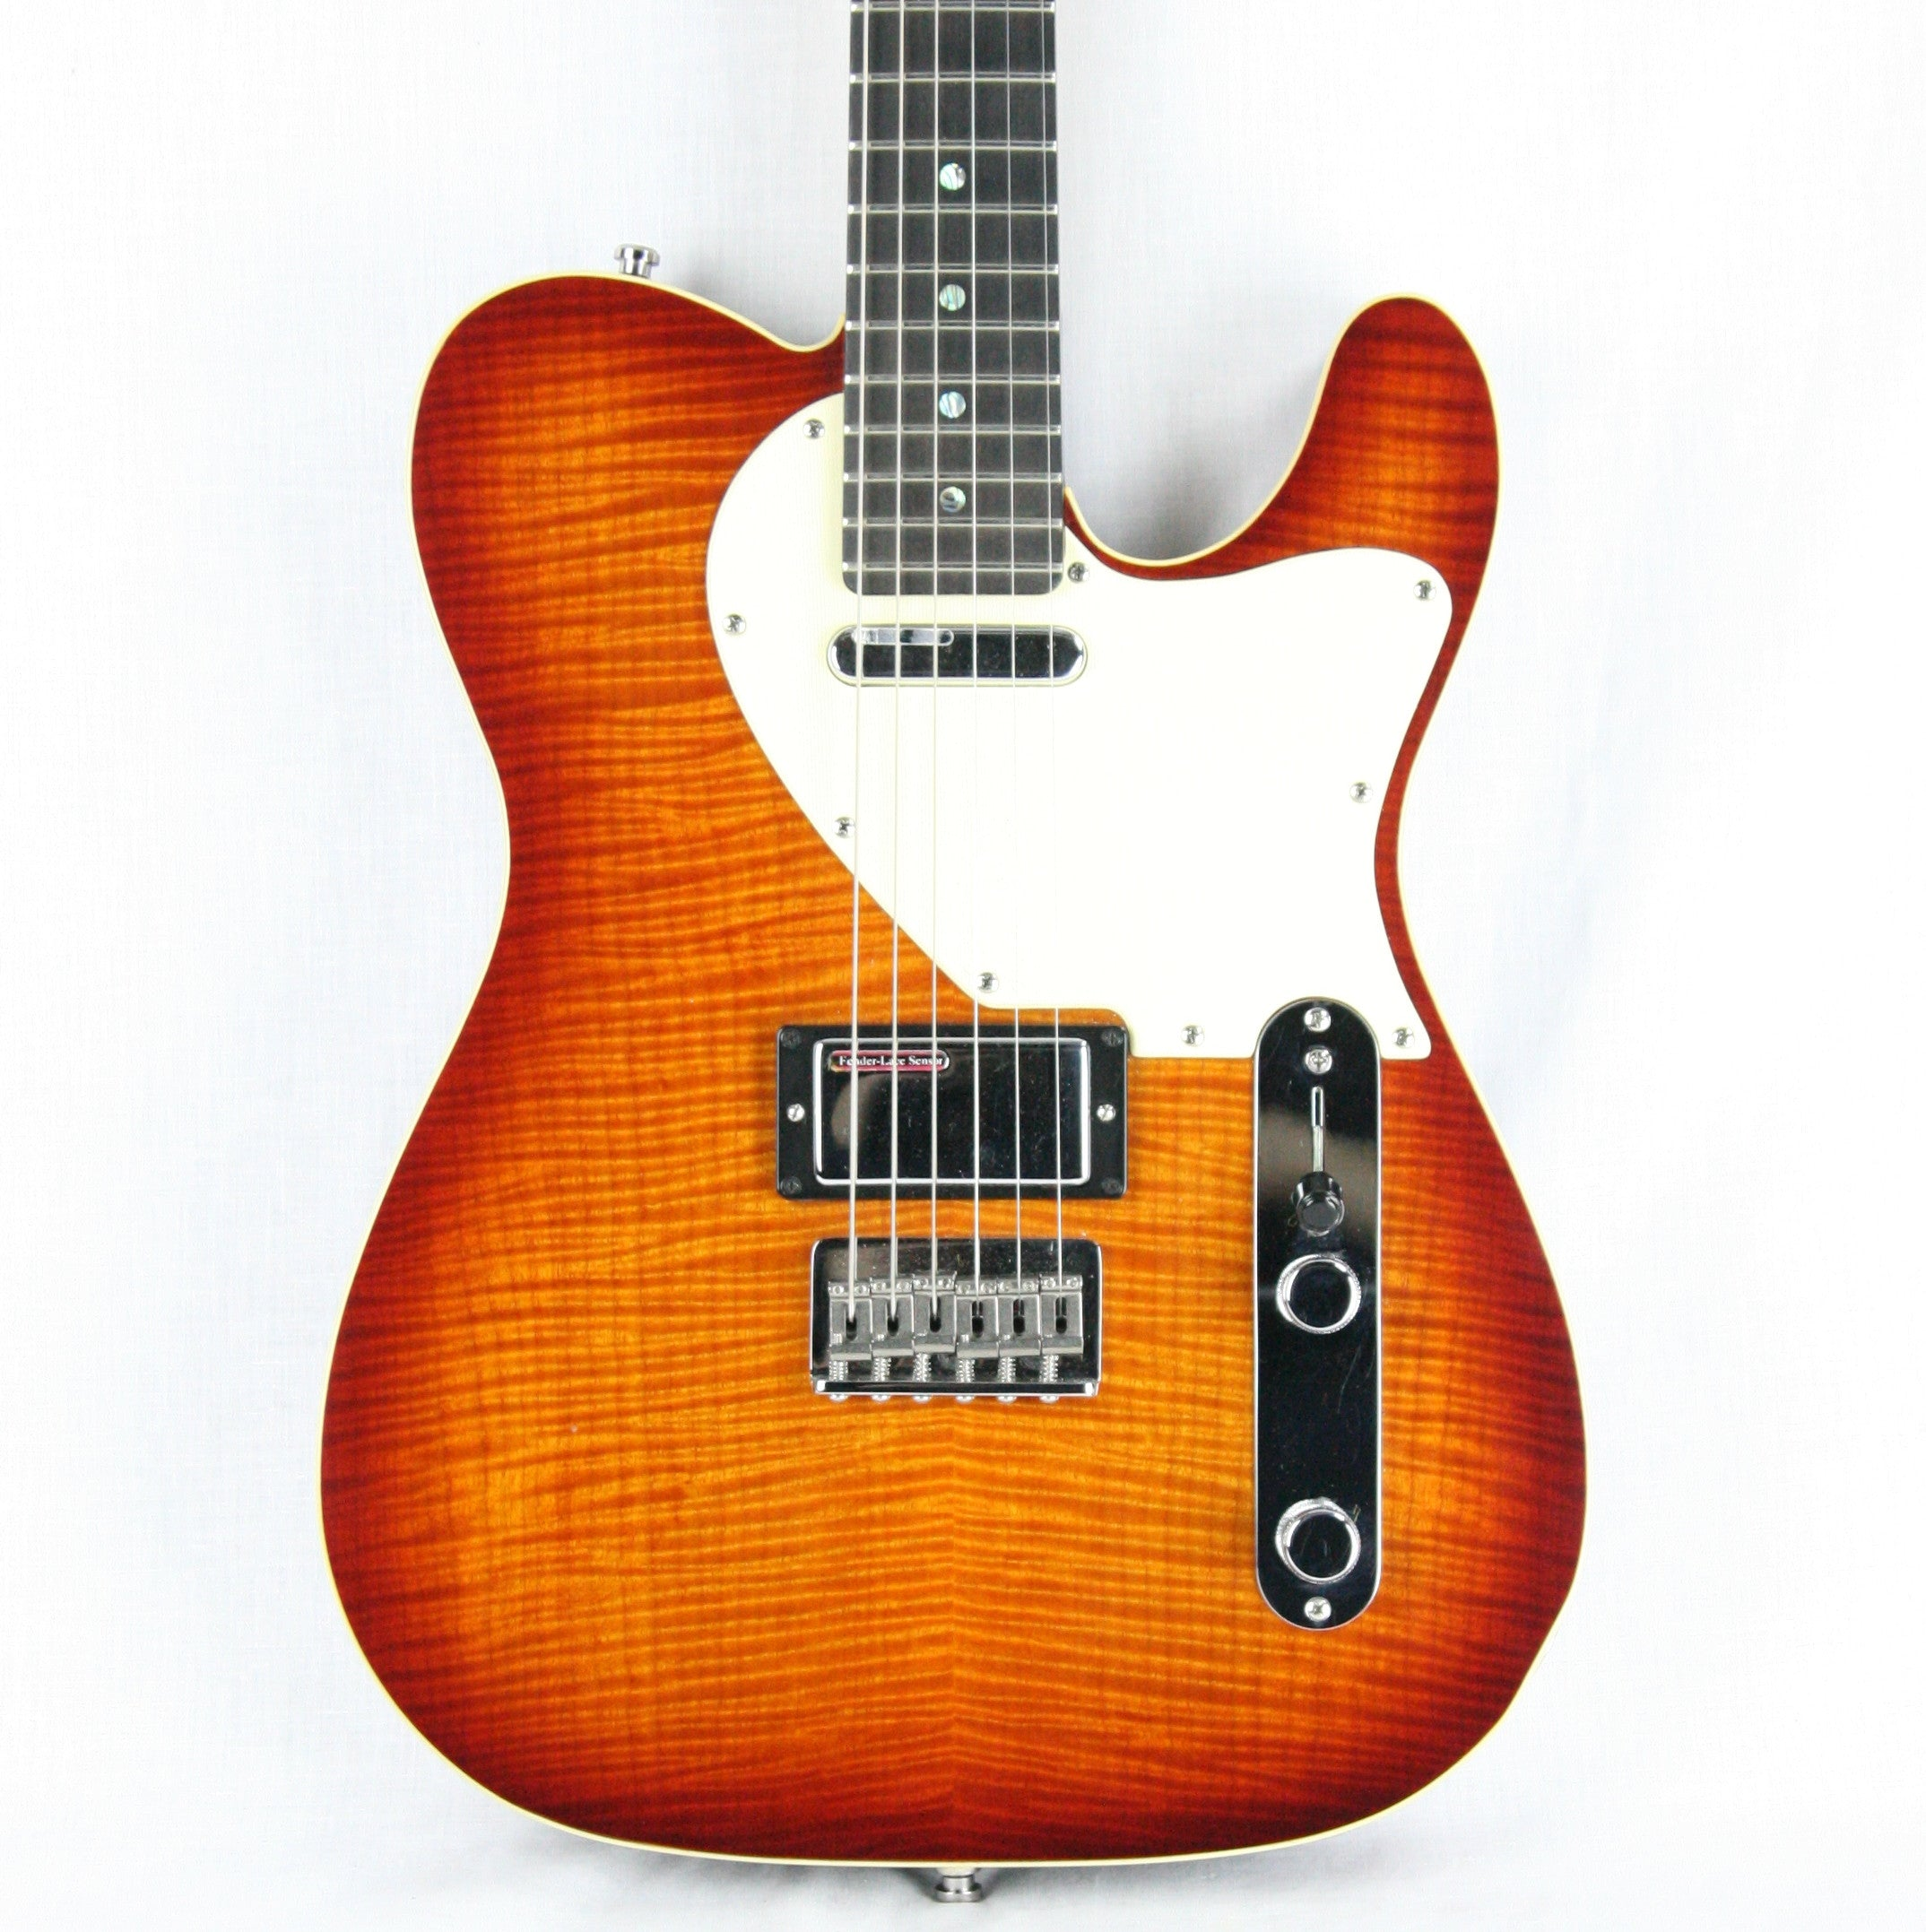 1994 Fender Masterbuilt JOHN ENGLISH Telecaster Custom Shop One-of-a-kind! Lace Sensors, Flametop, Birdseye Maple Neck!